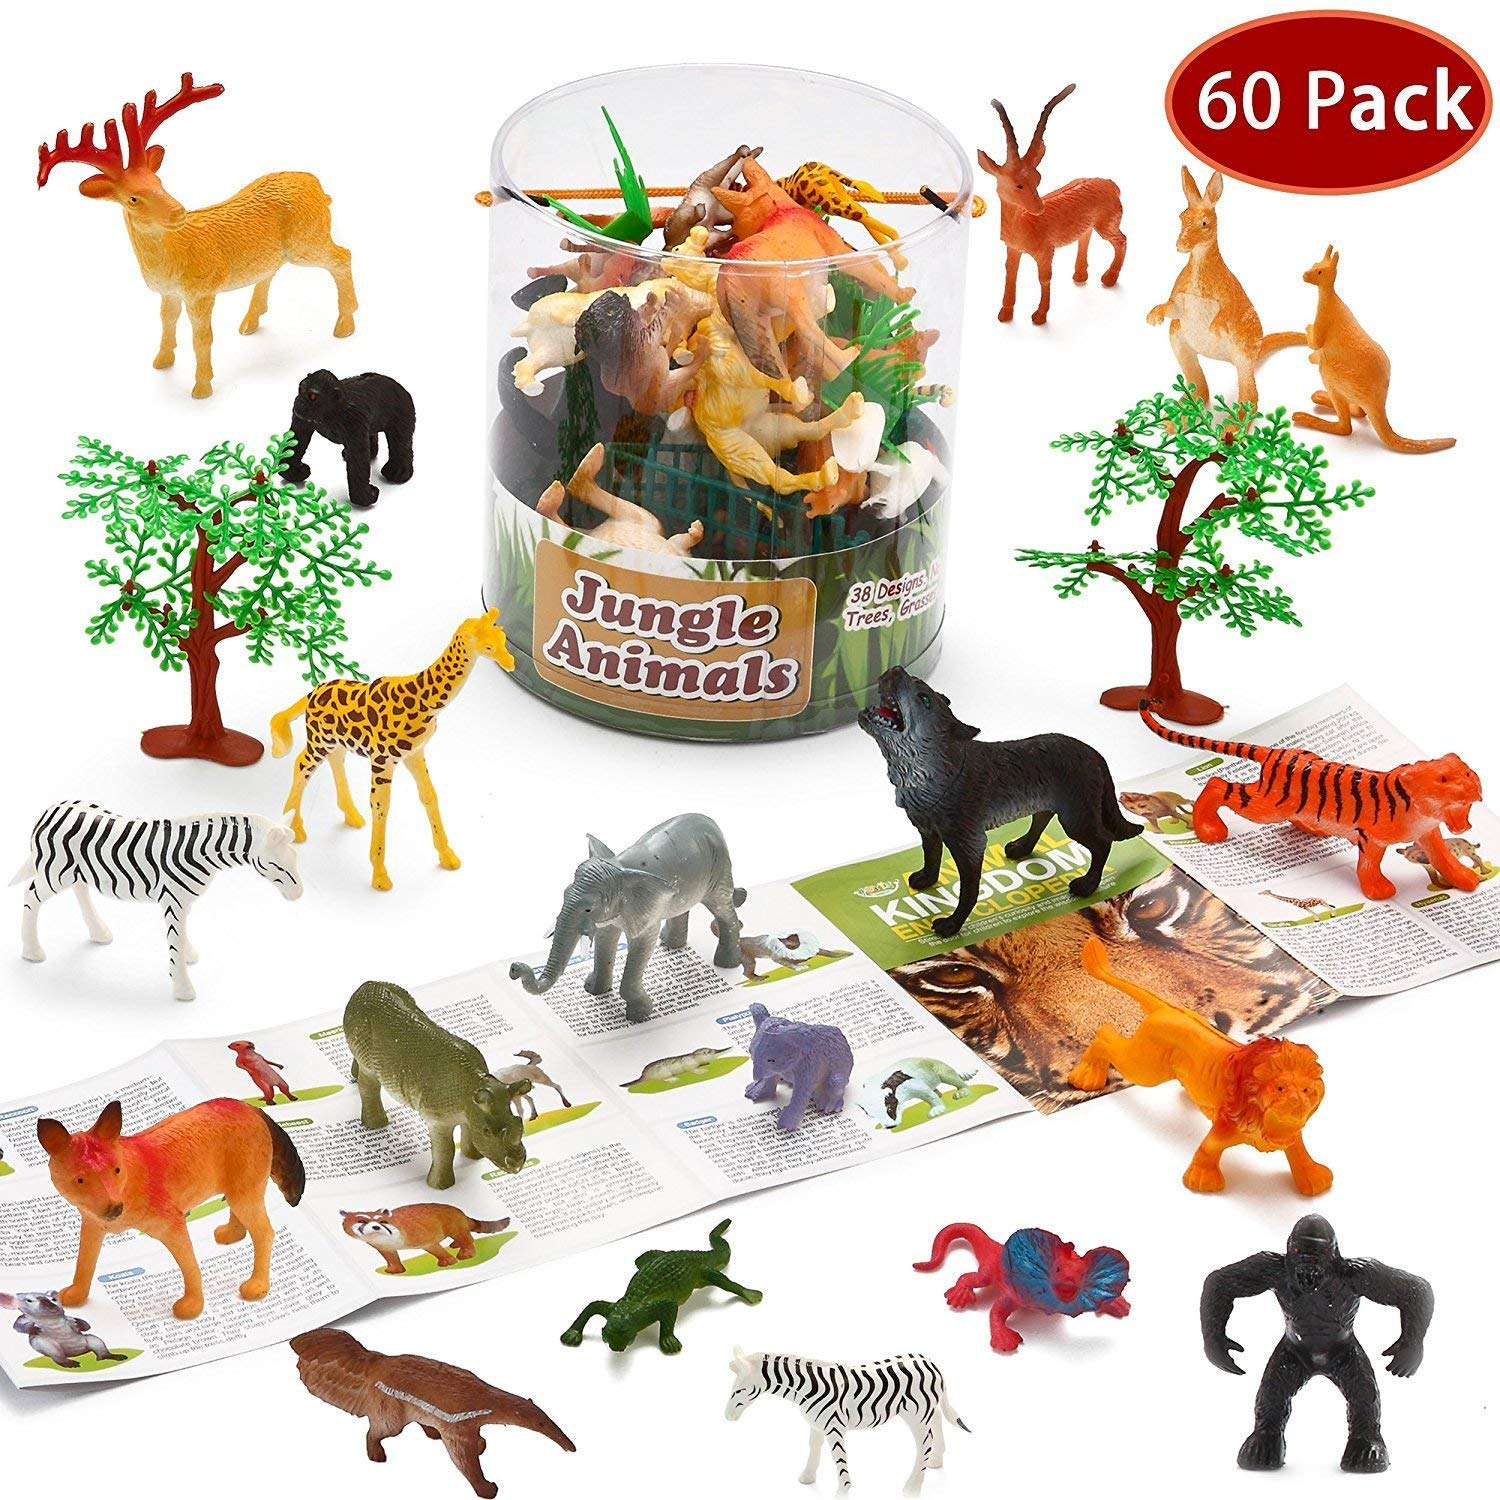 PeeNoke Toy 60 Pieces Safari Jungle Animal Figures Toddler Toy Set Realistic Wild Plastic Animal Playset - Animal Encyclopedia Included (2.5 to 5.5 Inches)